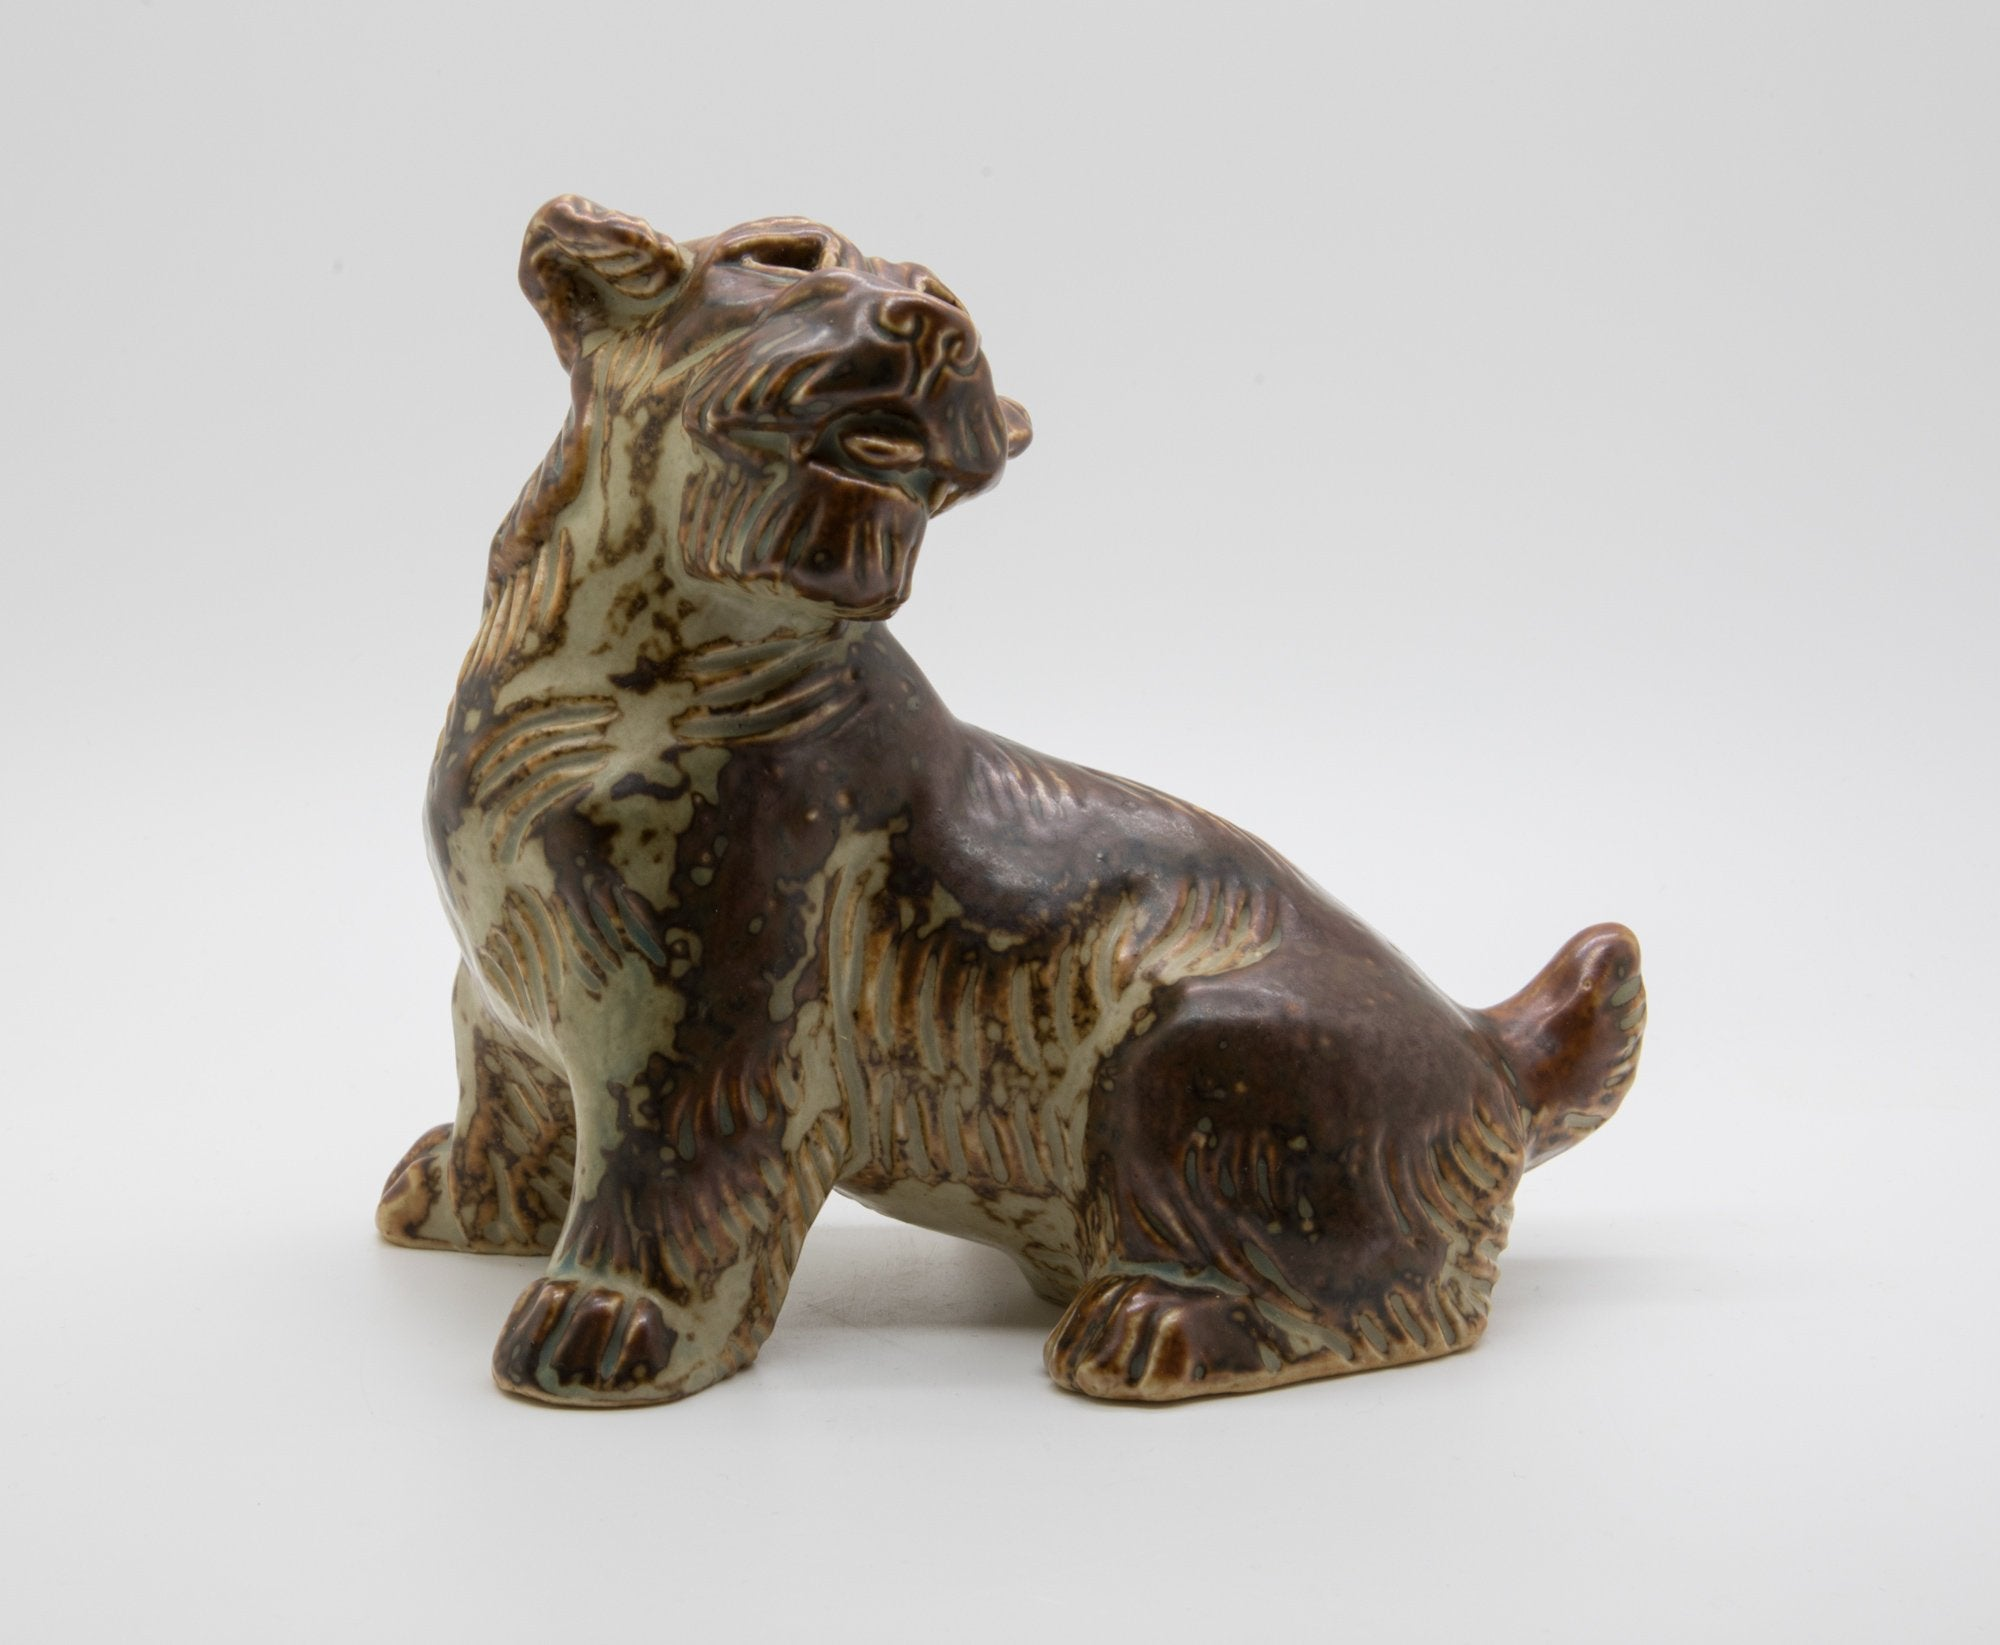 Royal Copenhagen KNUD KYHN Sung Glazed Stoneware Terrier Dog Figurine # 20129 - Mollaris.com